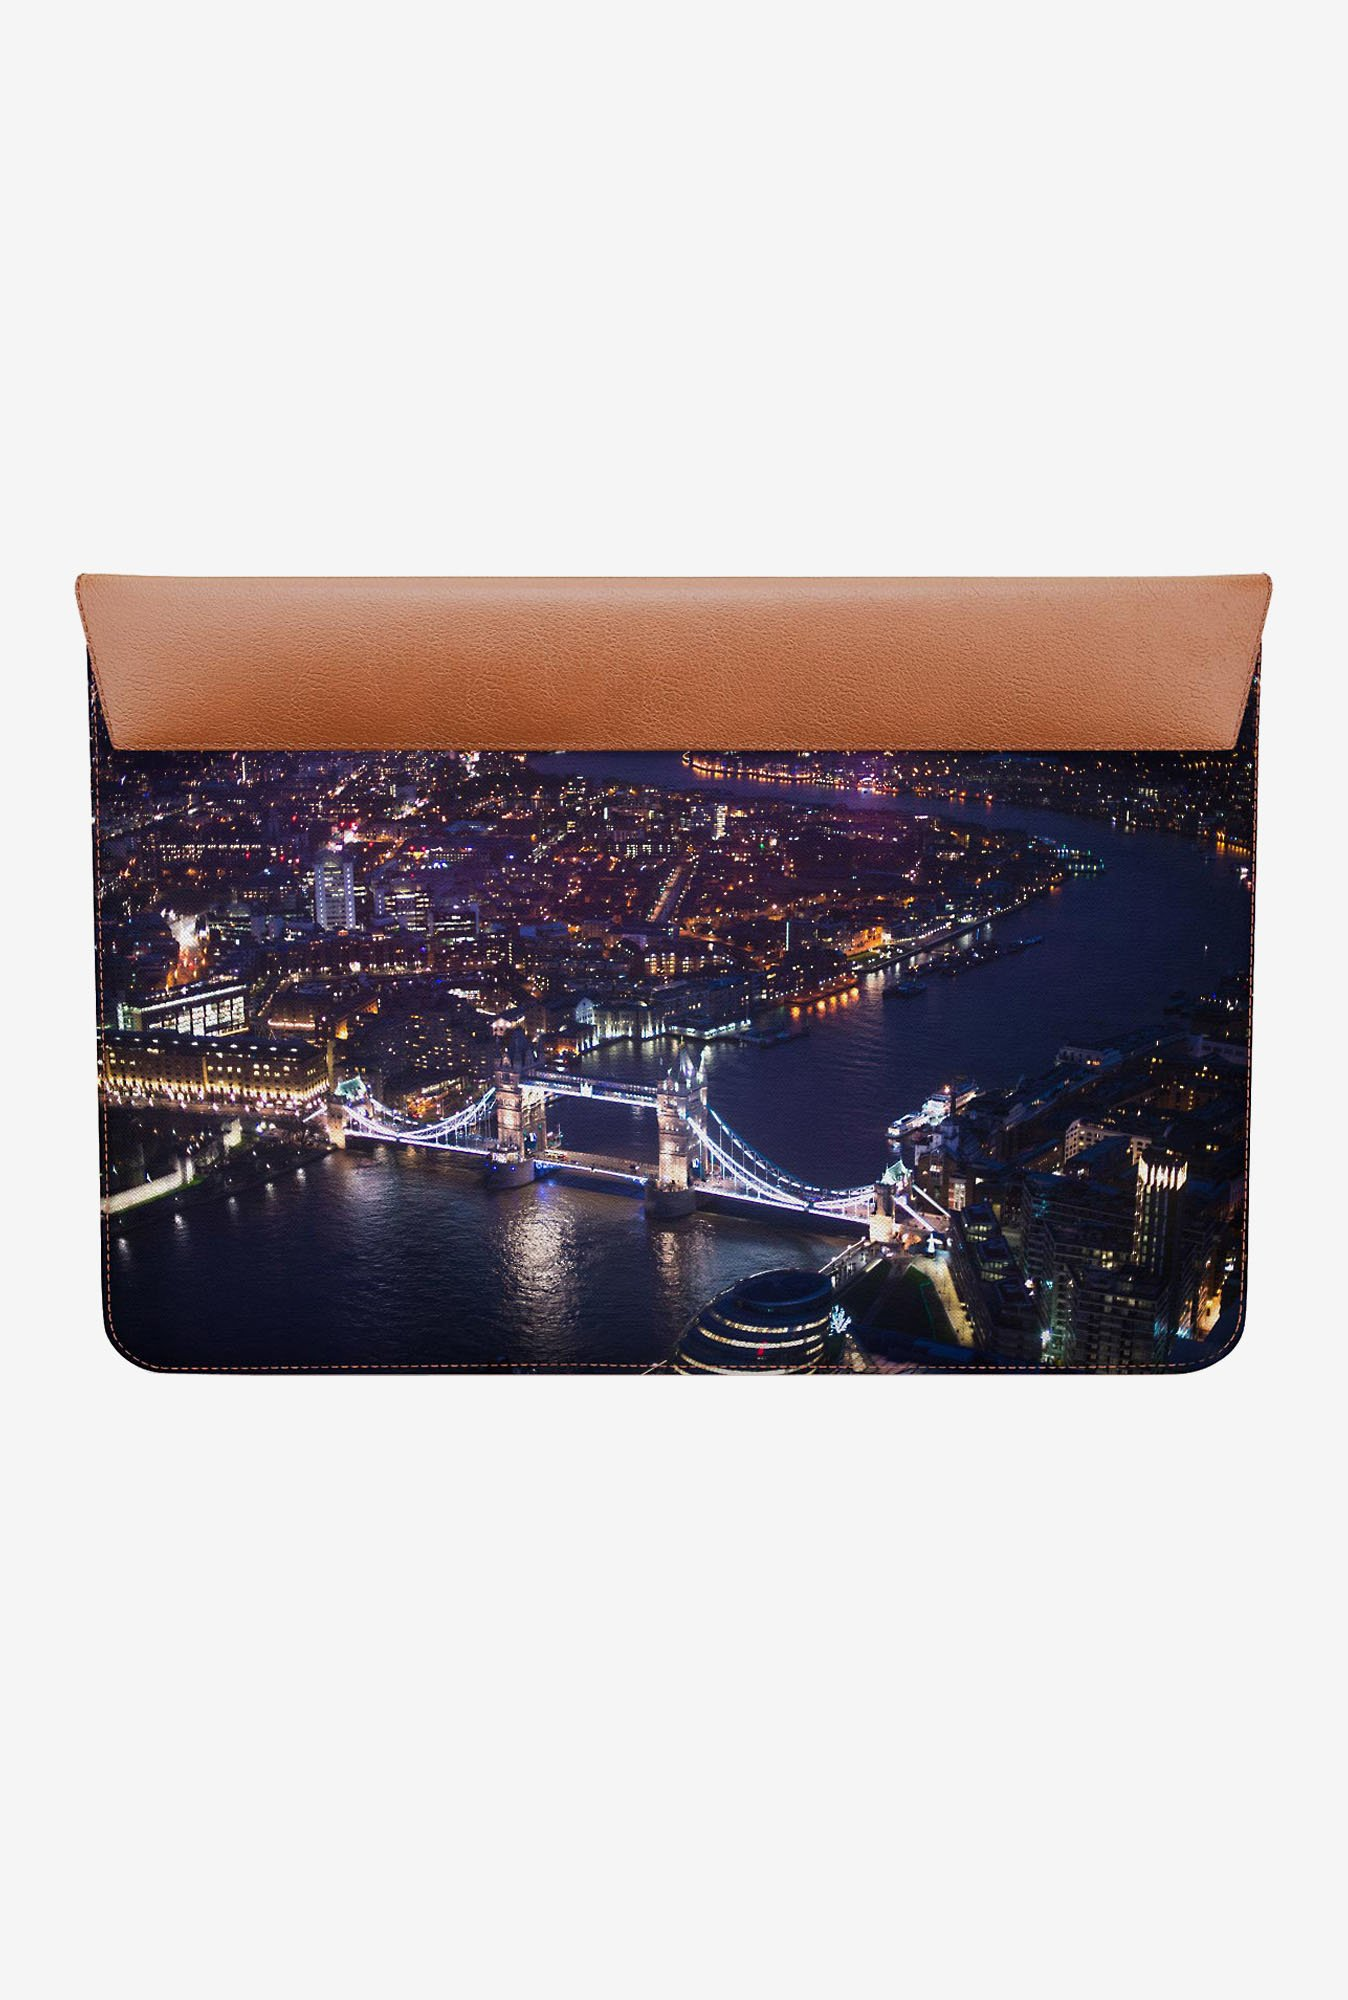 DailyObjects Thames by Night MacBook 12 Envelope Sleeve